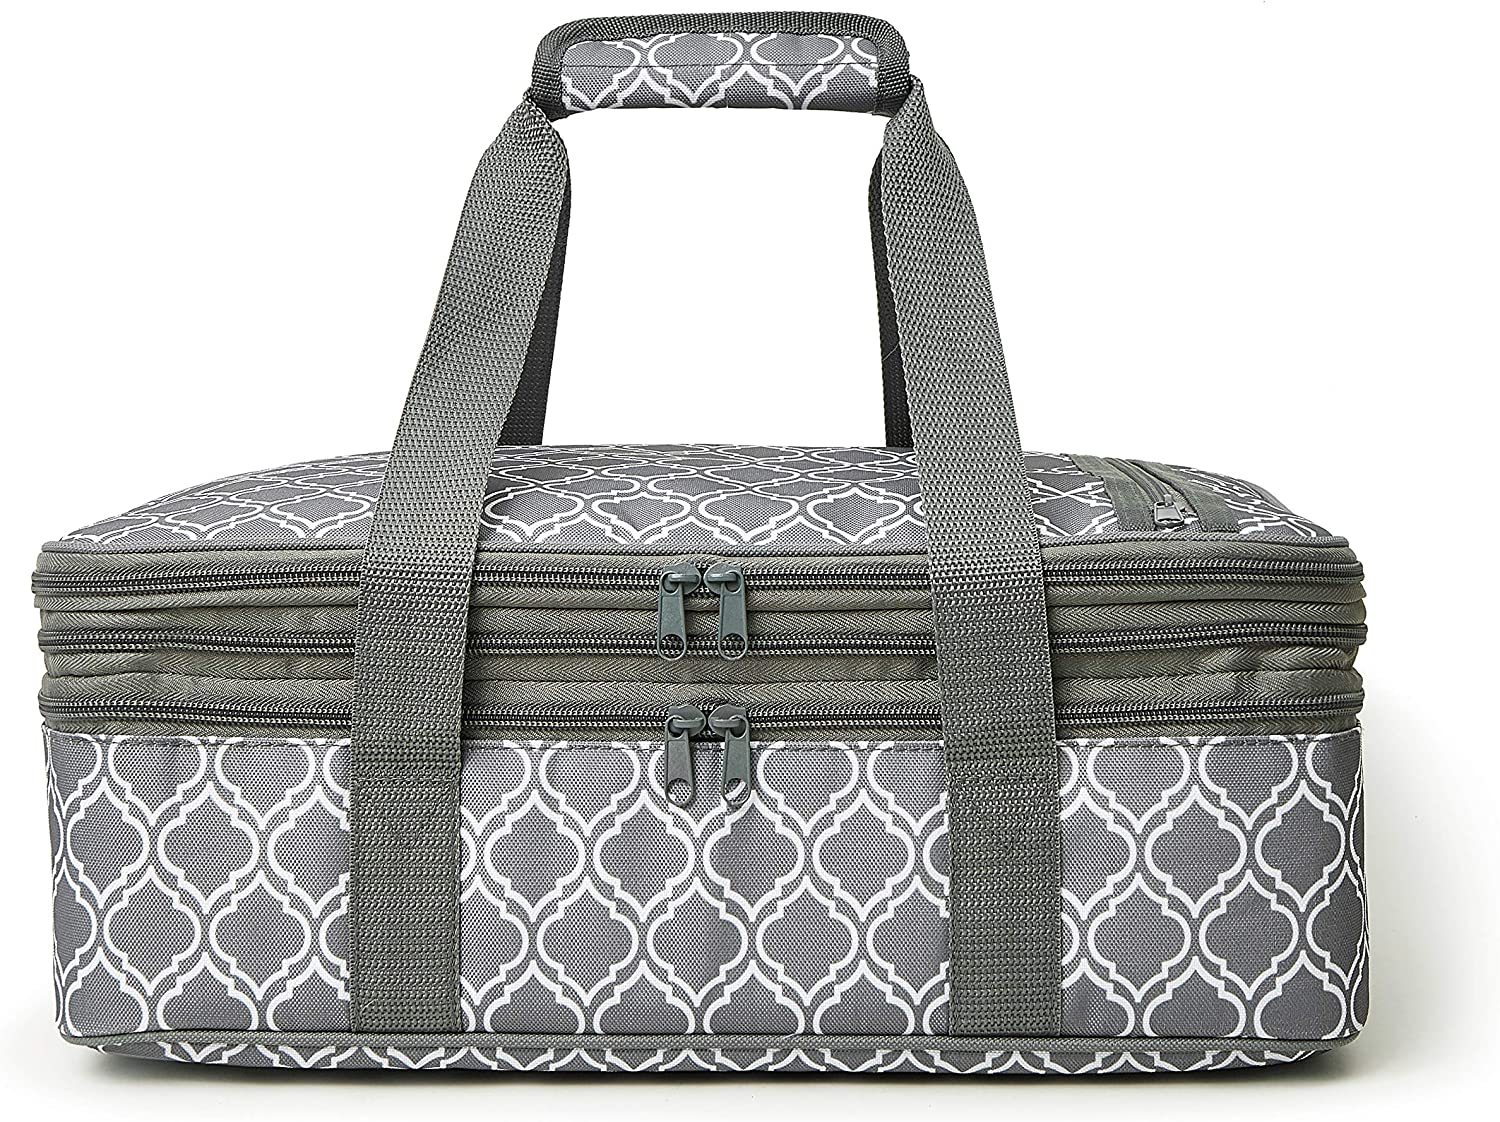 Insulated Casserole Carry Bag - Decker Casserole Carrier Tote Food Bag Potluck Parties,Picnic,Cookouts,Traveling,Beach